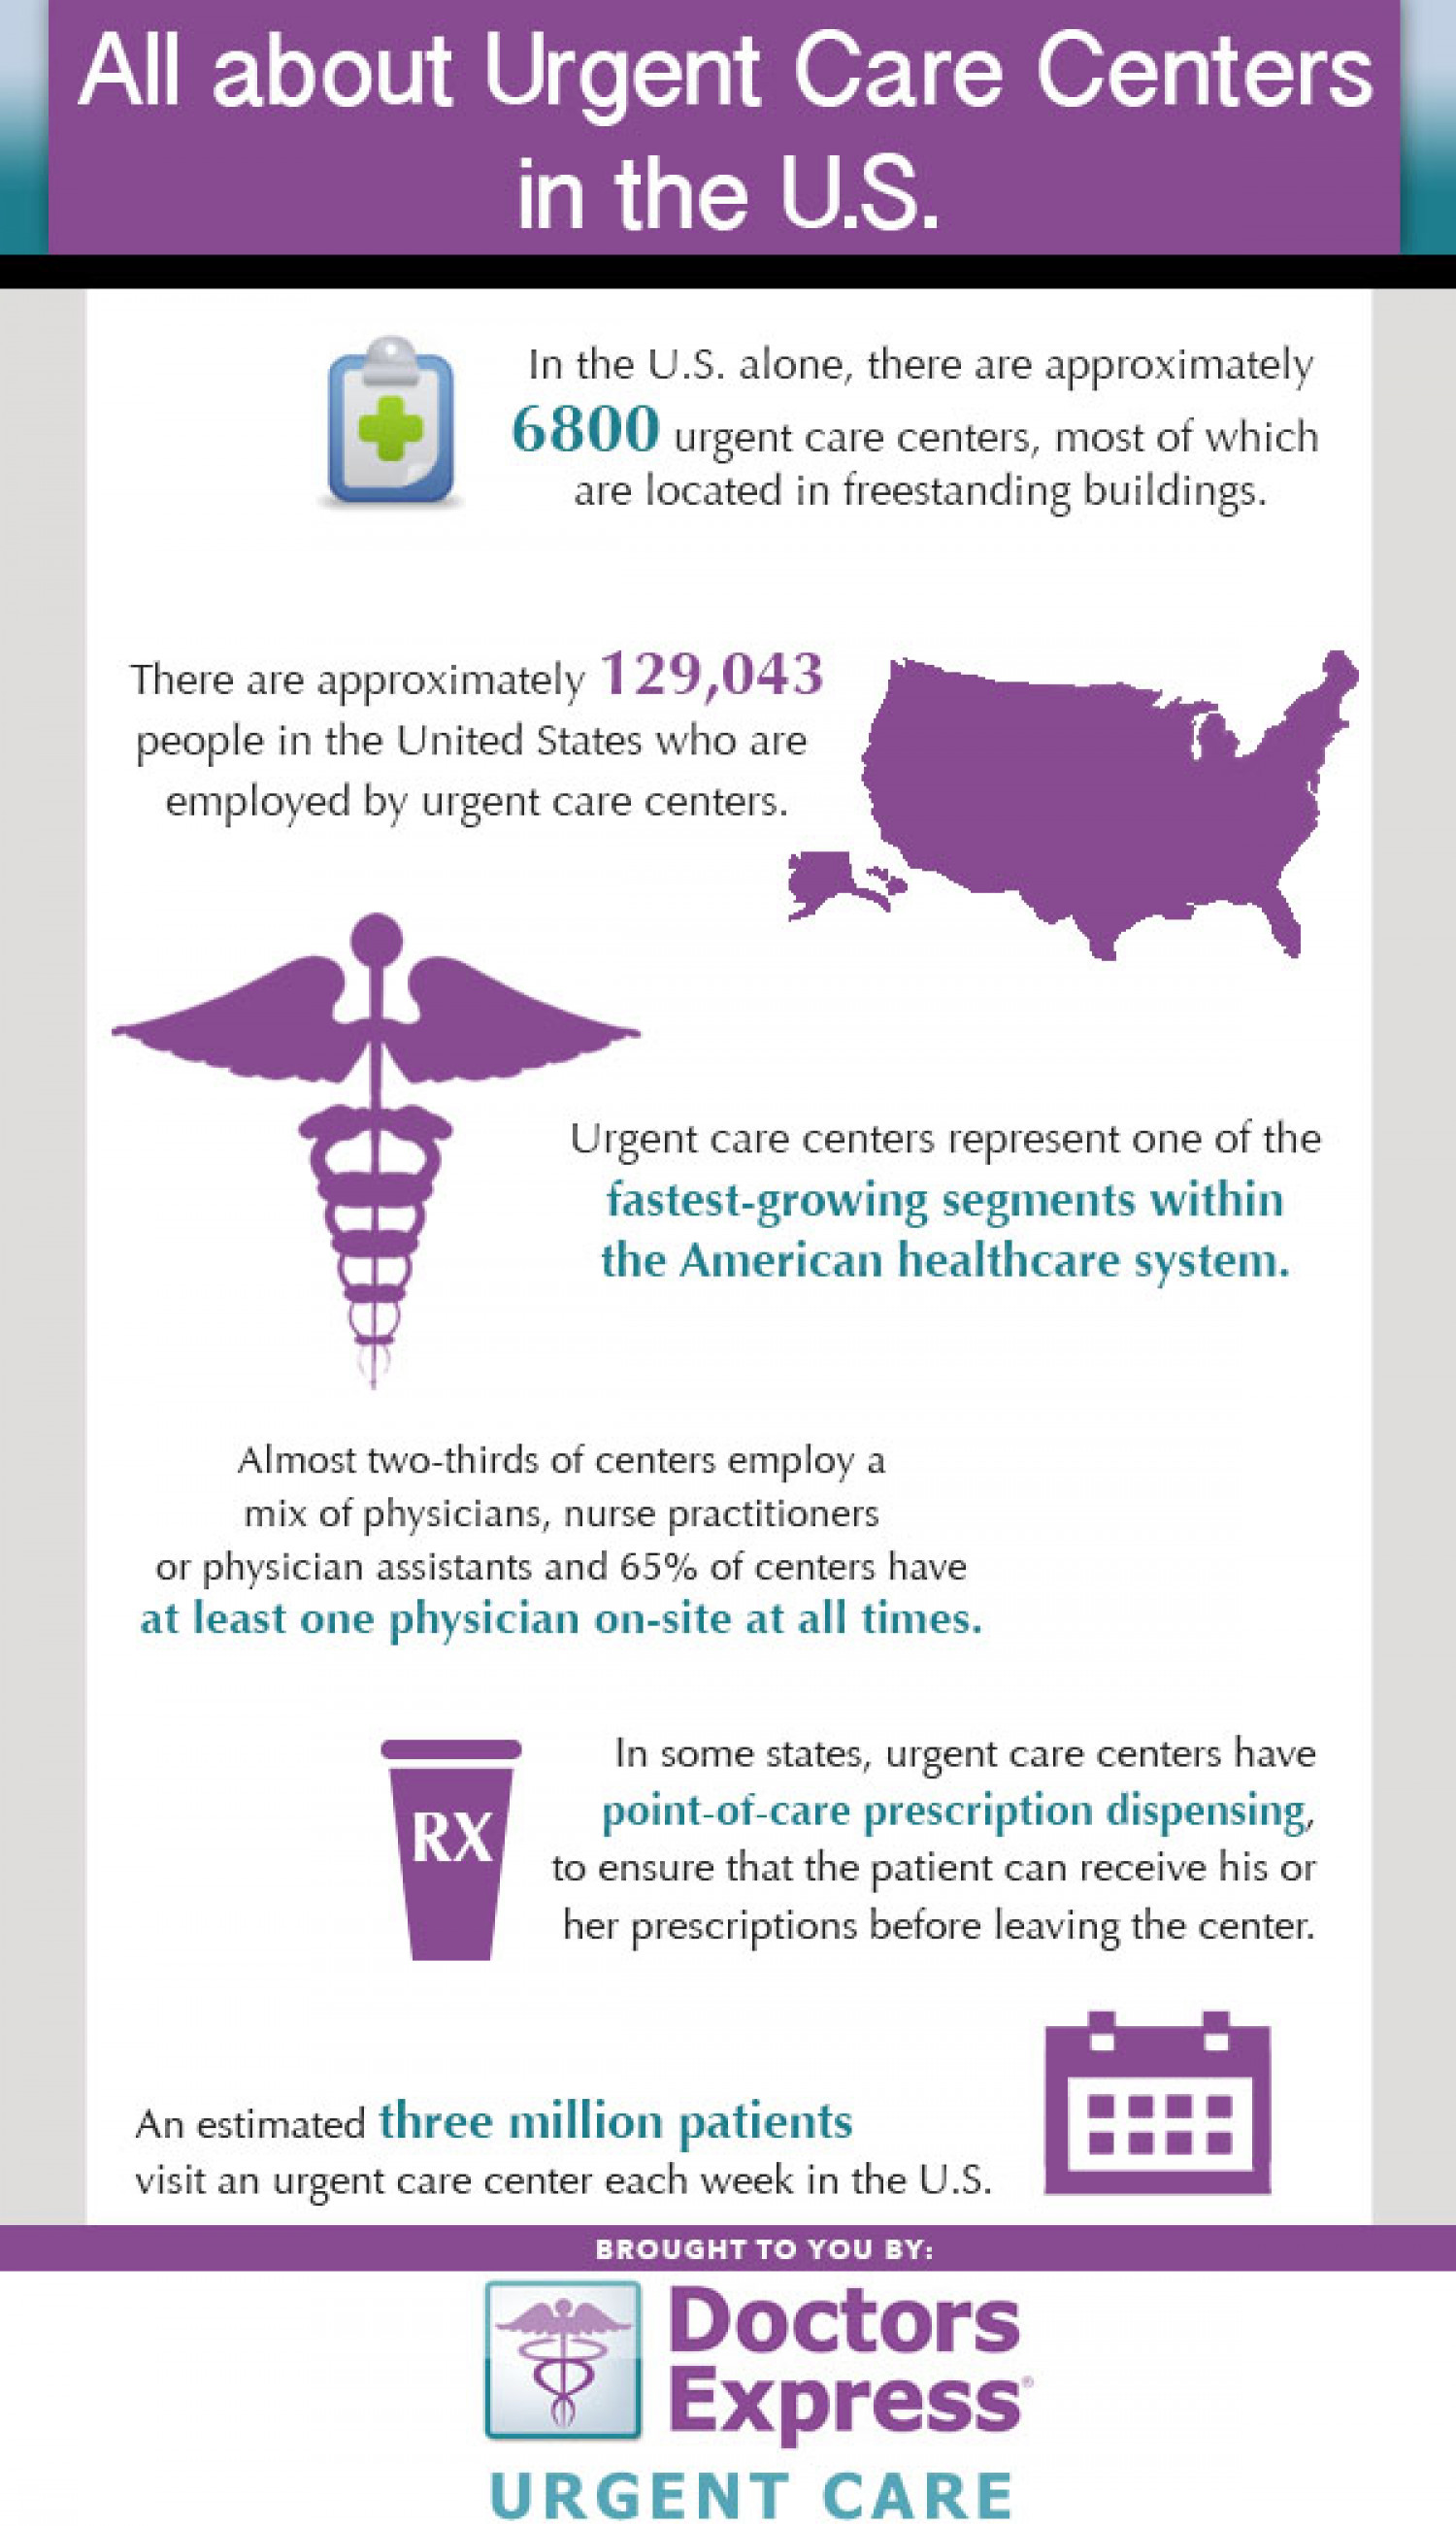 All About Urgent Care Centers in the U.S. Infographic